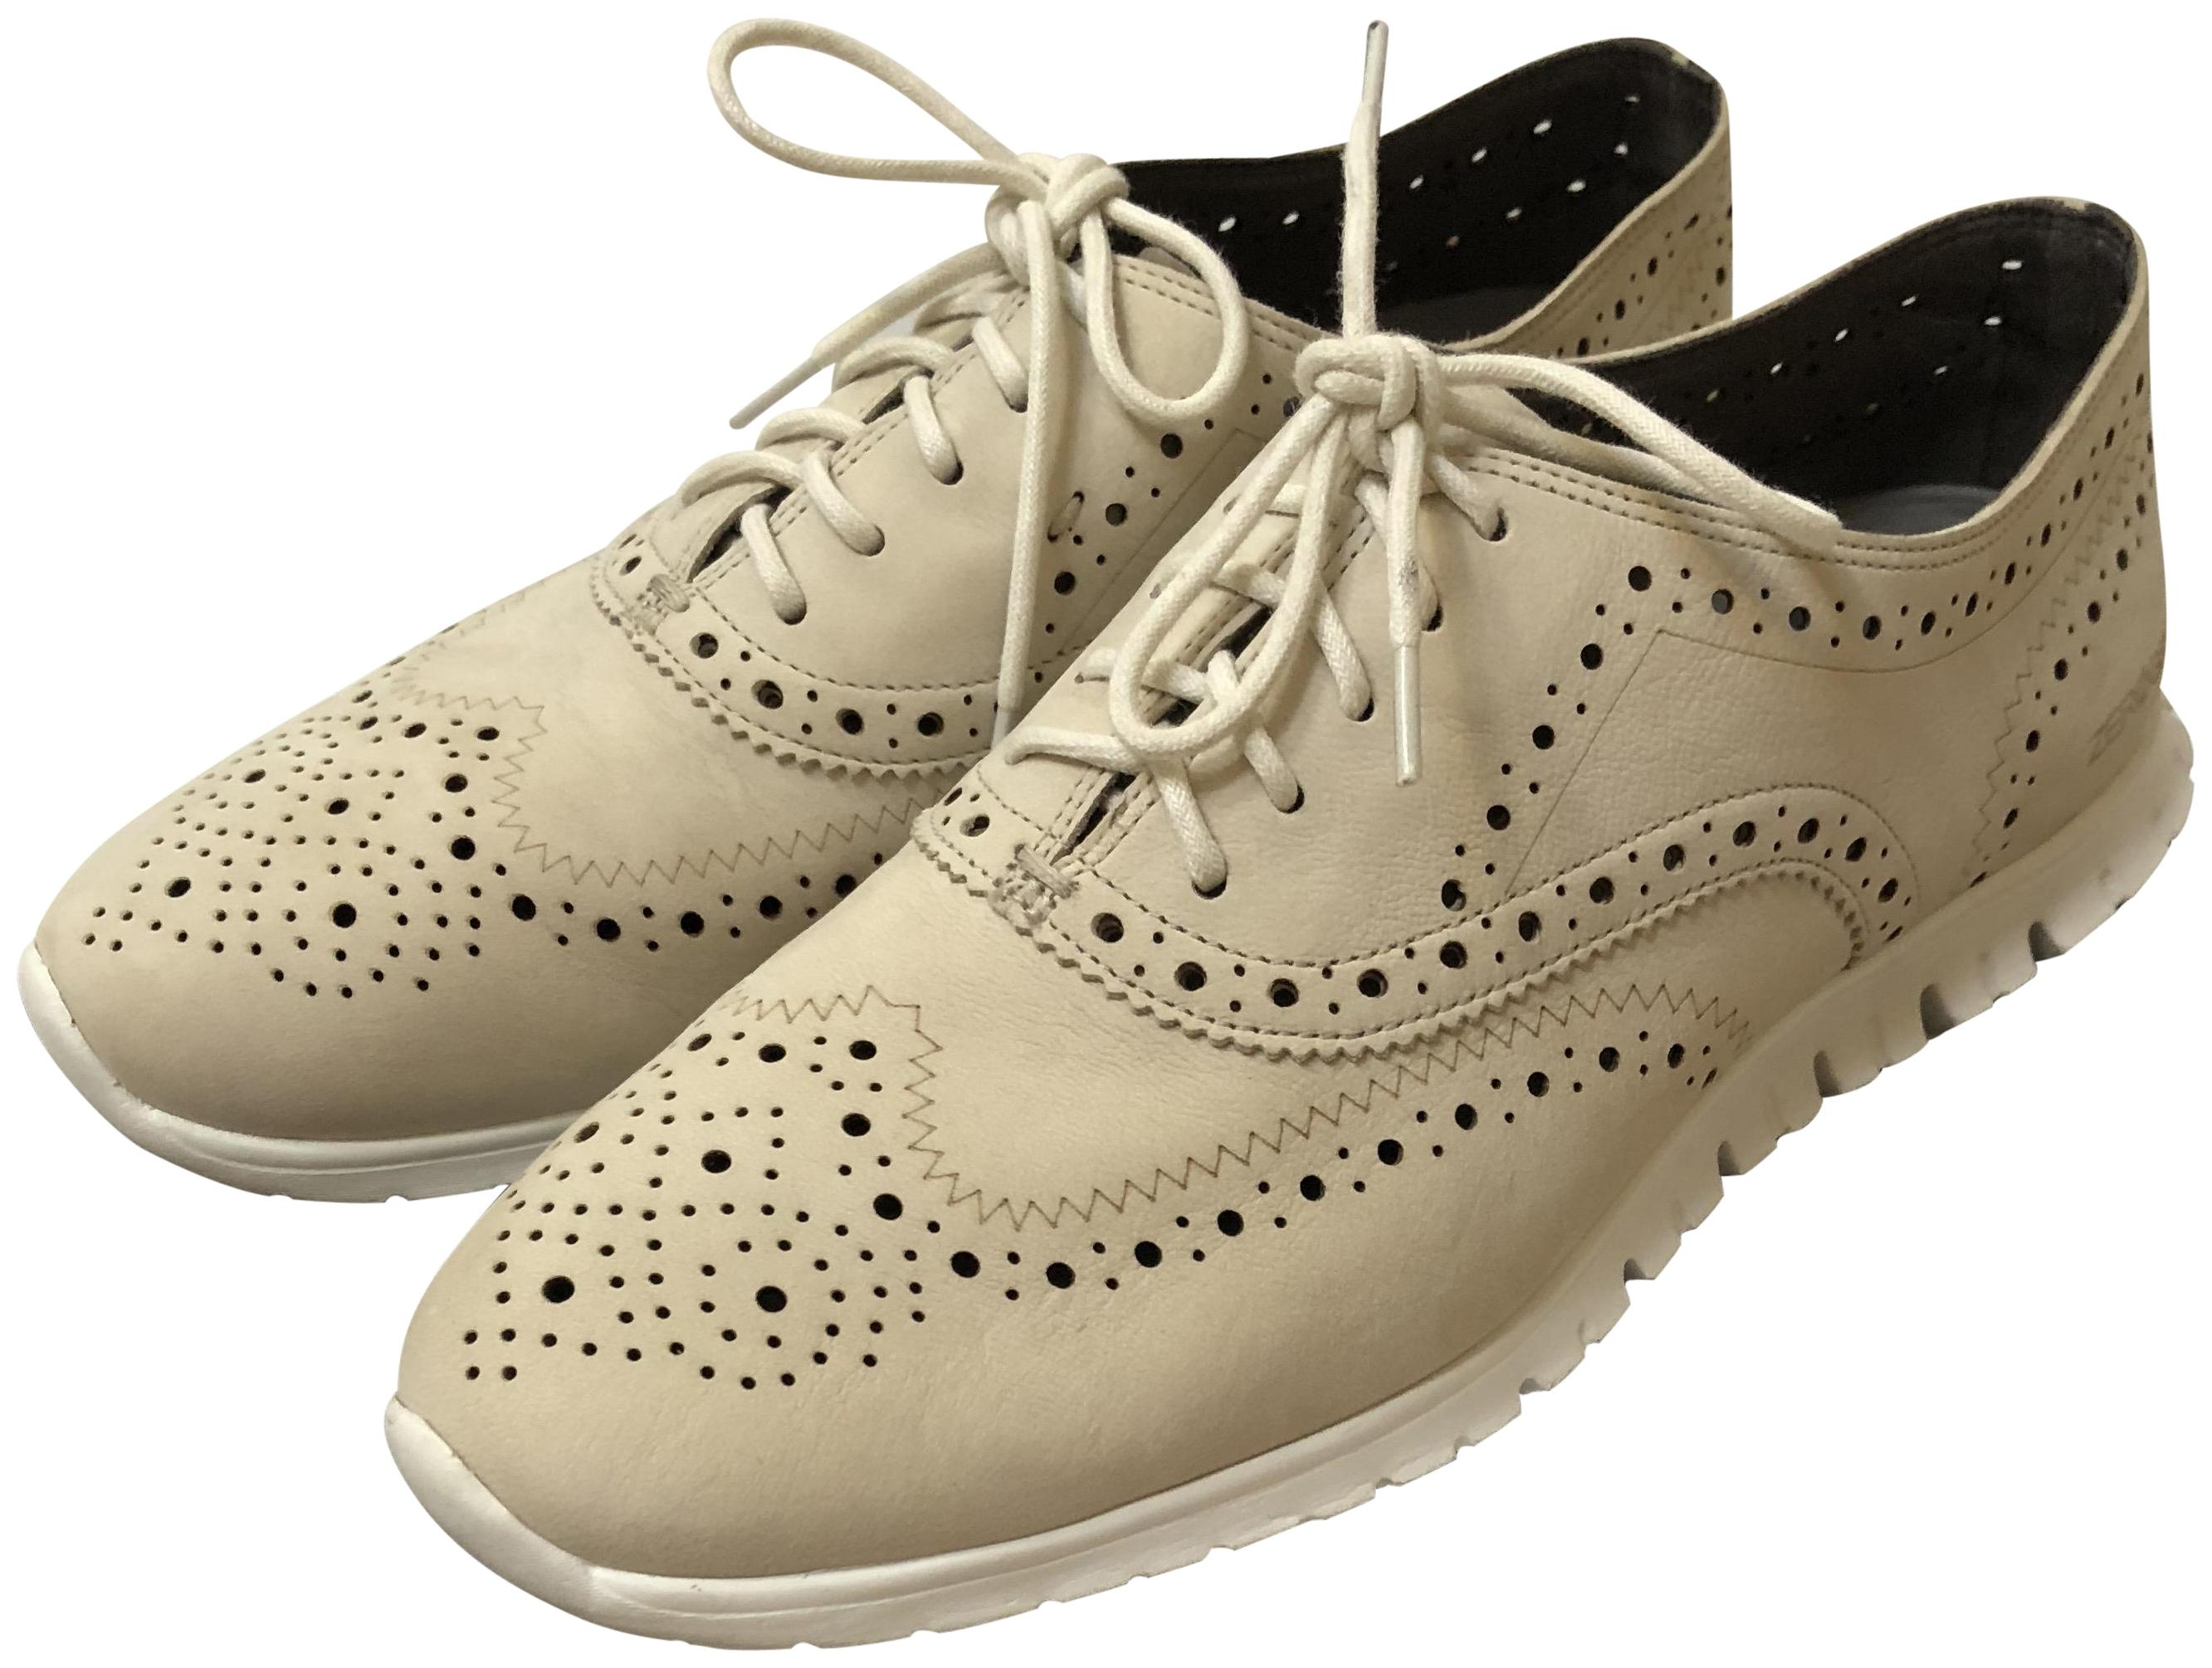 Cole Haan Oat Nubuck/Wht Zerogrand Wing Ox Sneakers Size US 8.5 Regular (M, B)